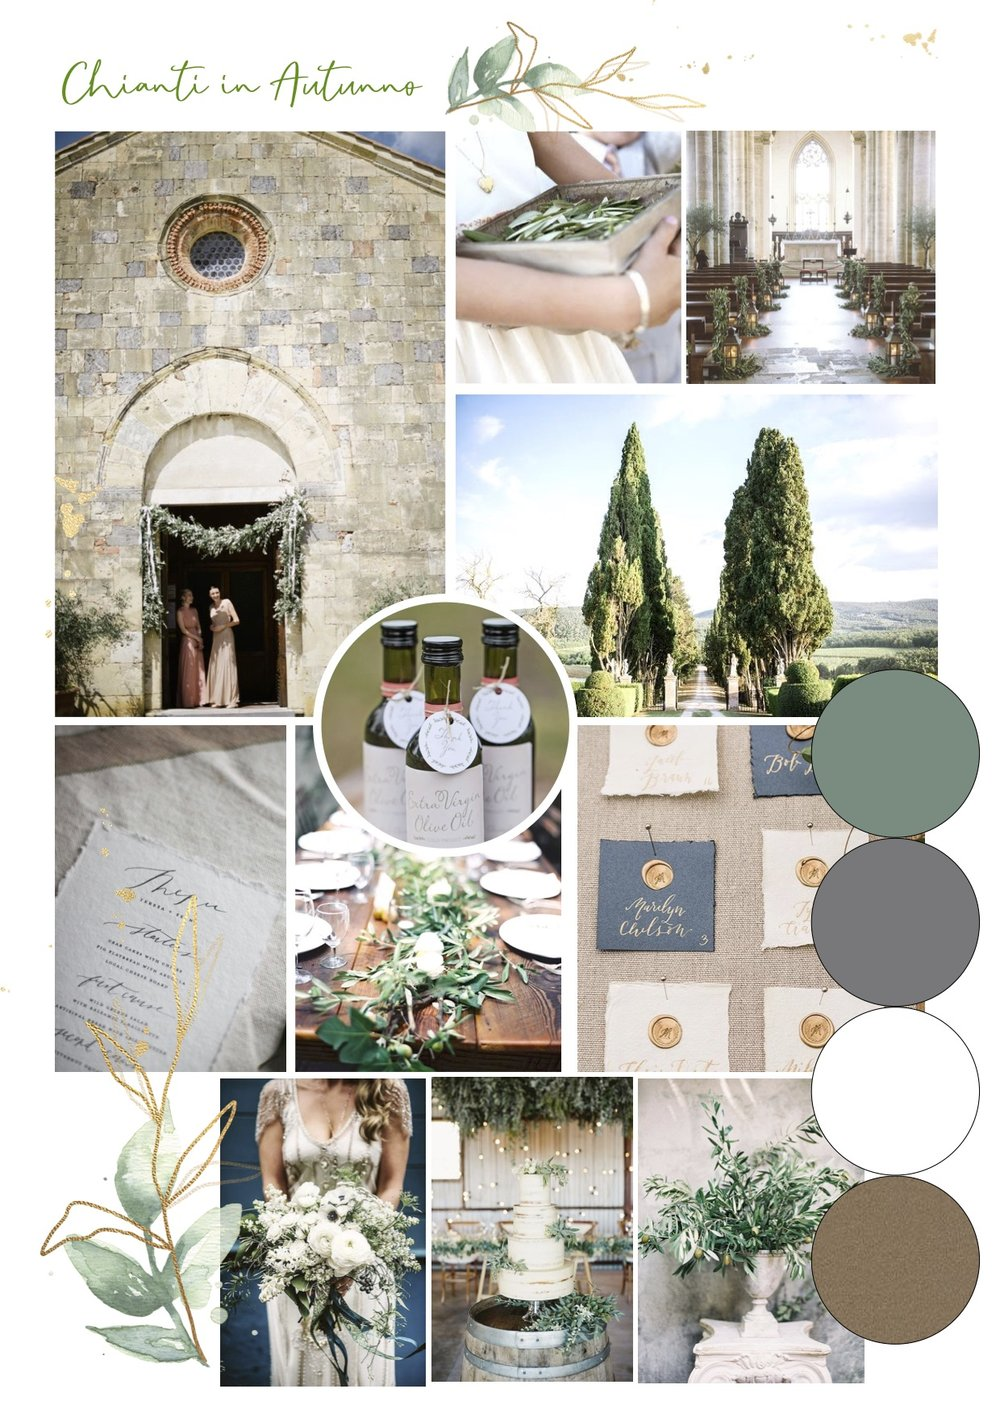 Chianti-in-Autumn-wedding-moodboard.jpg